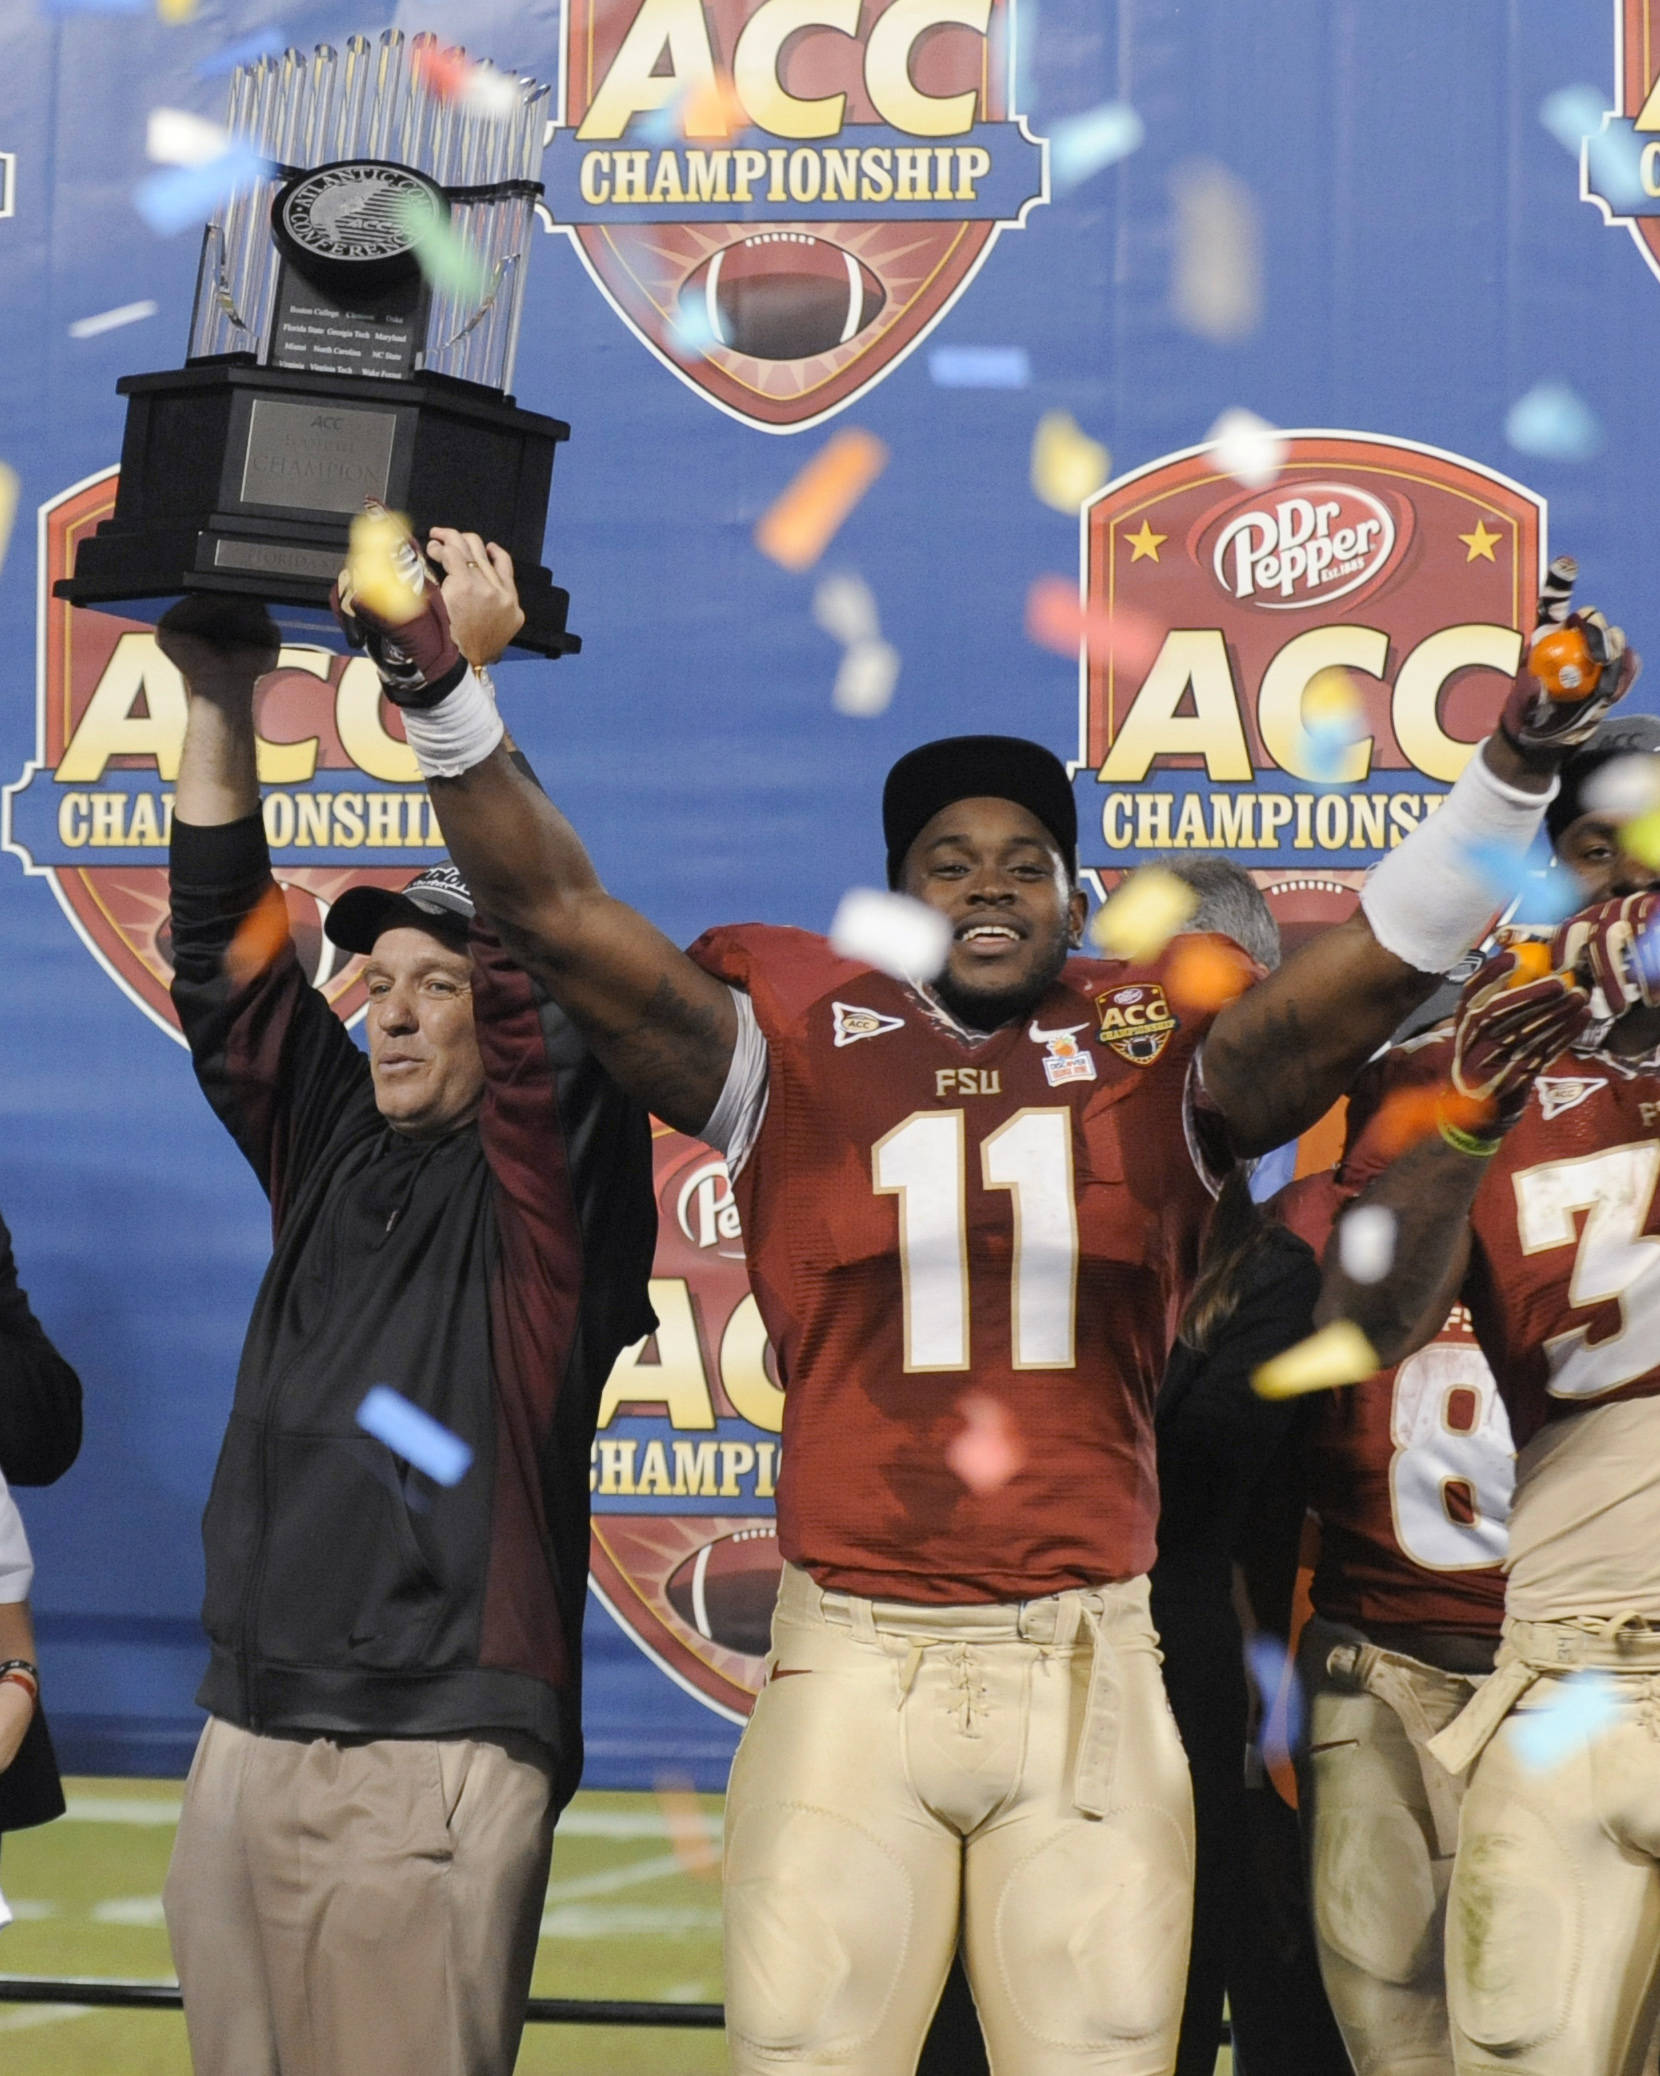 Florida State coach Jimbo Fisher, left, raises the trophy as Vince Williams (11) celebrates following the team's 21-15 win over Georgia Tech in the ACC championship. (AP Photo/Mike McCarn)